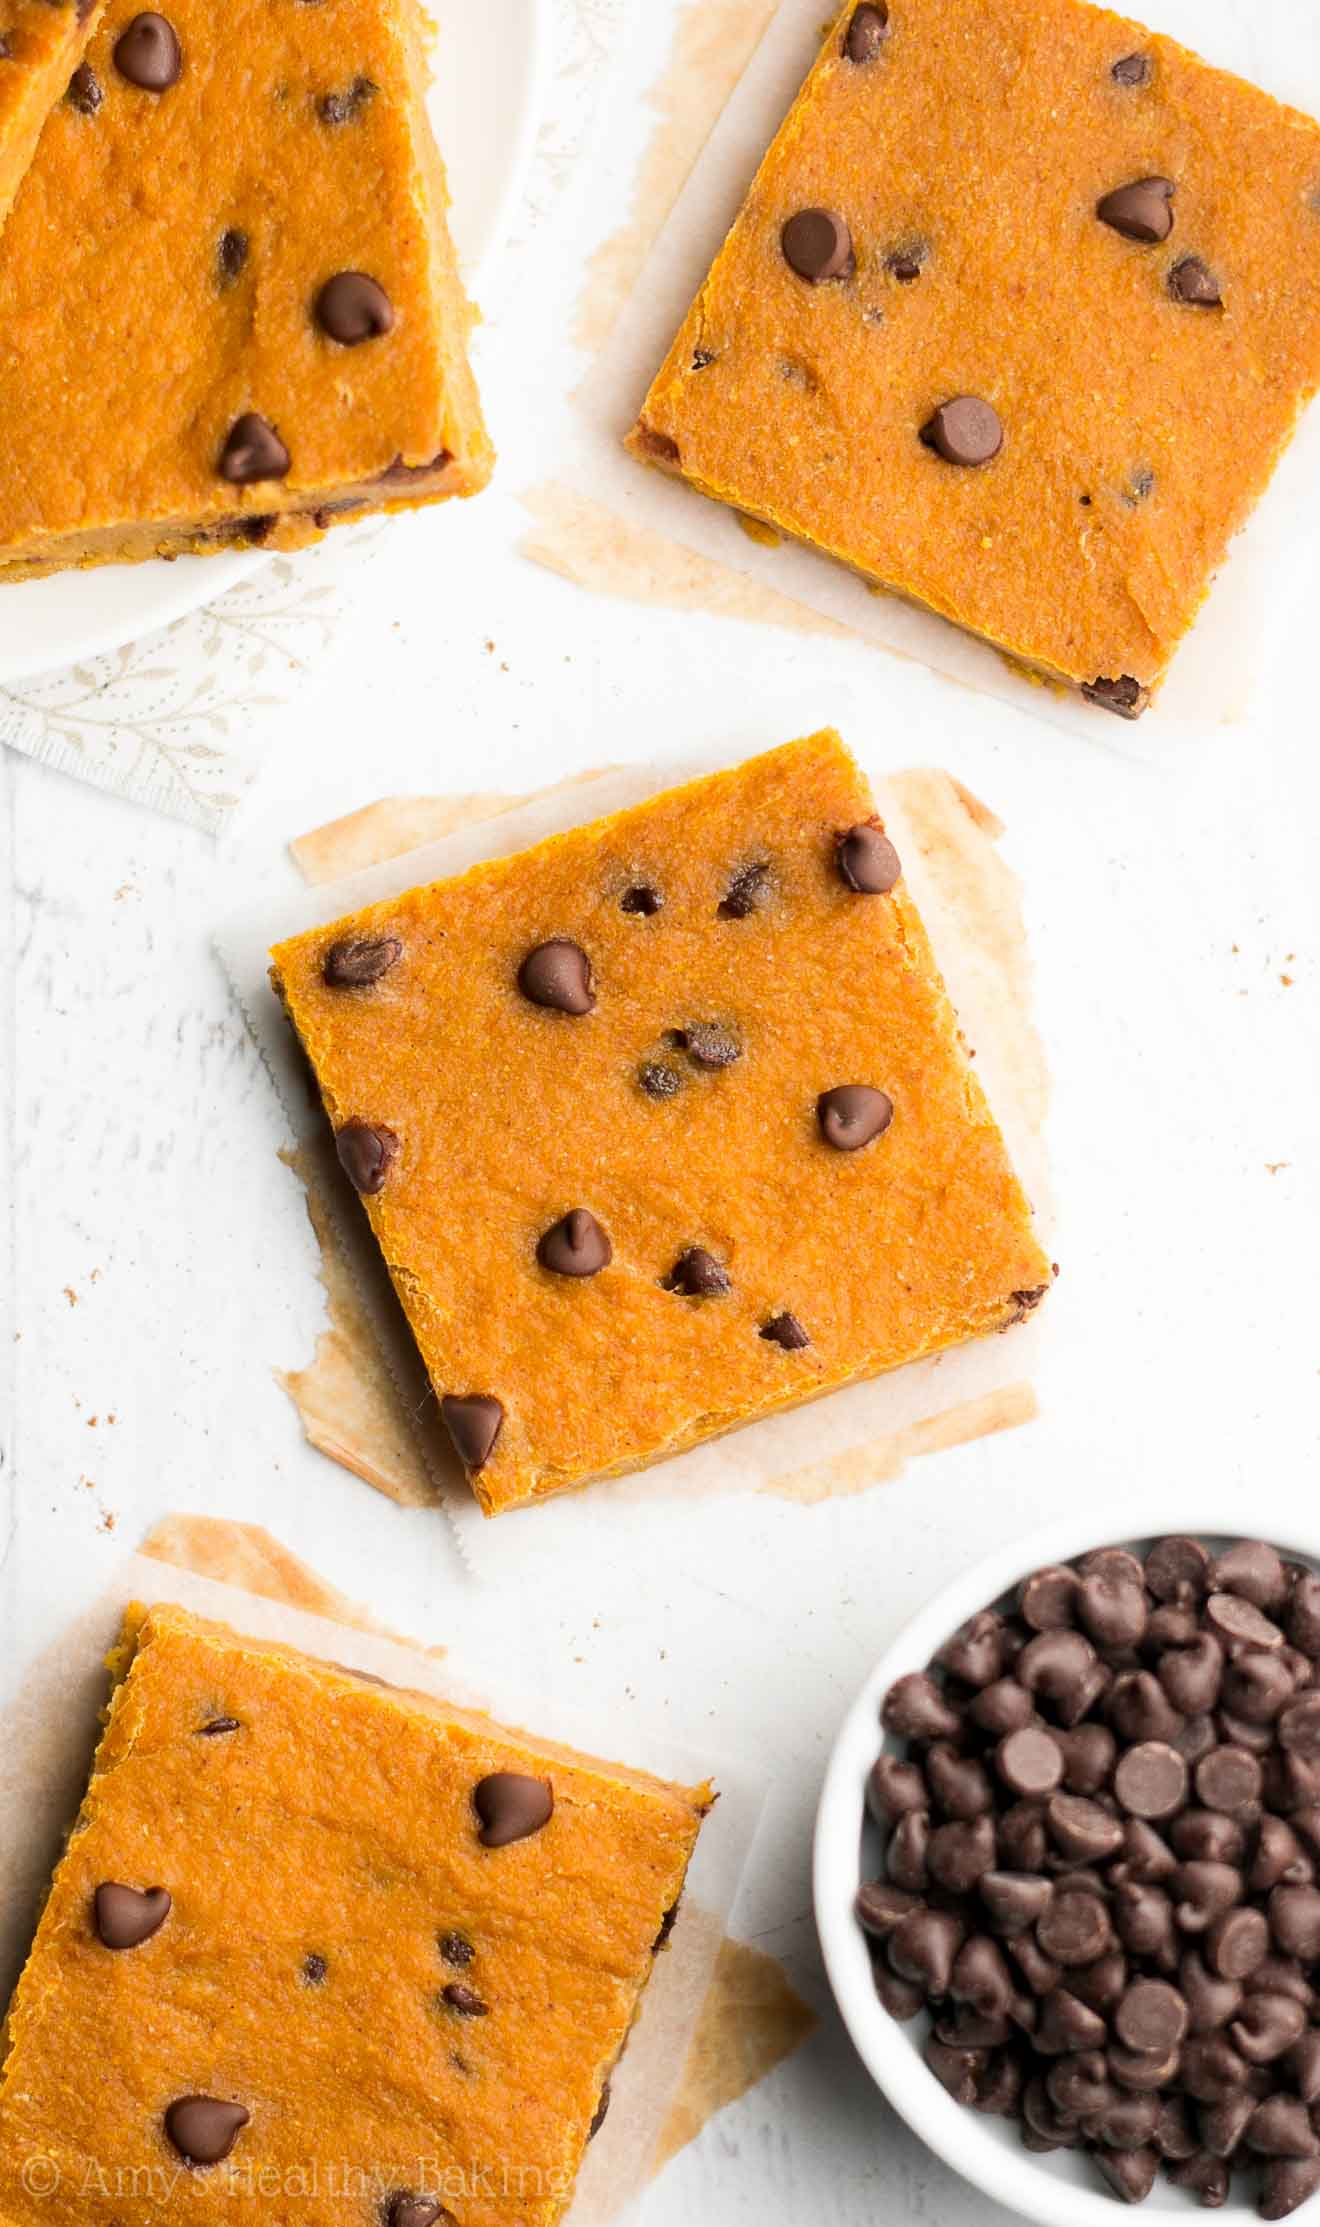 Chocolate Chip Pumpkin Pie Brownies | Amy's Healthy Baking